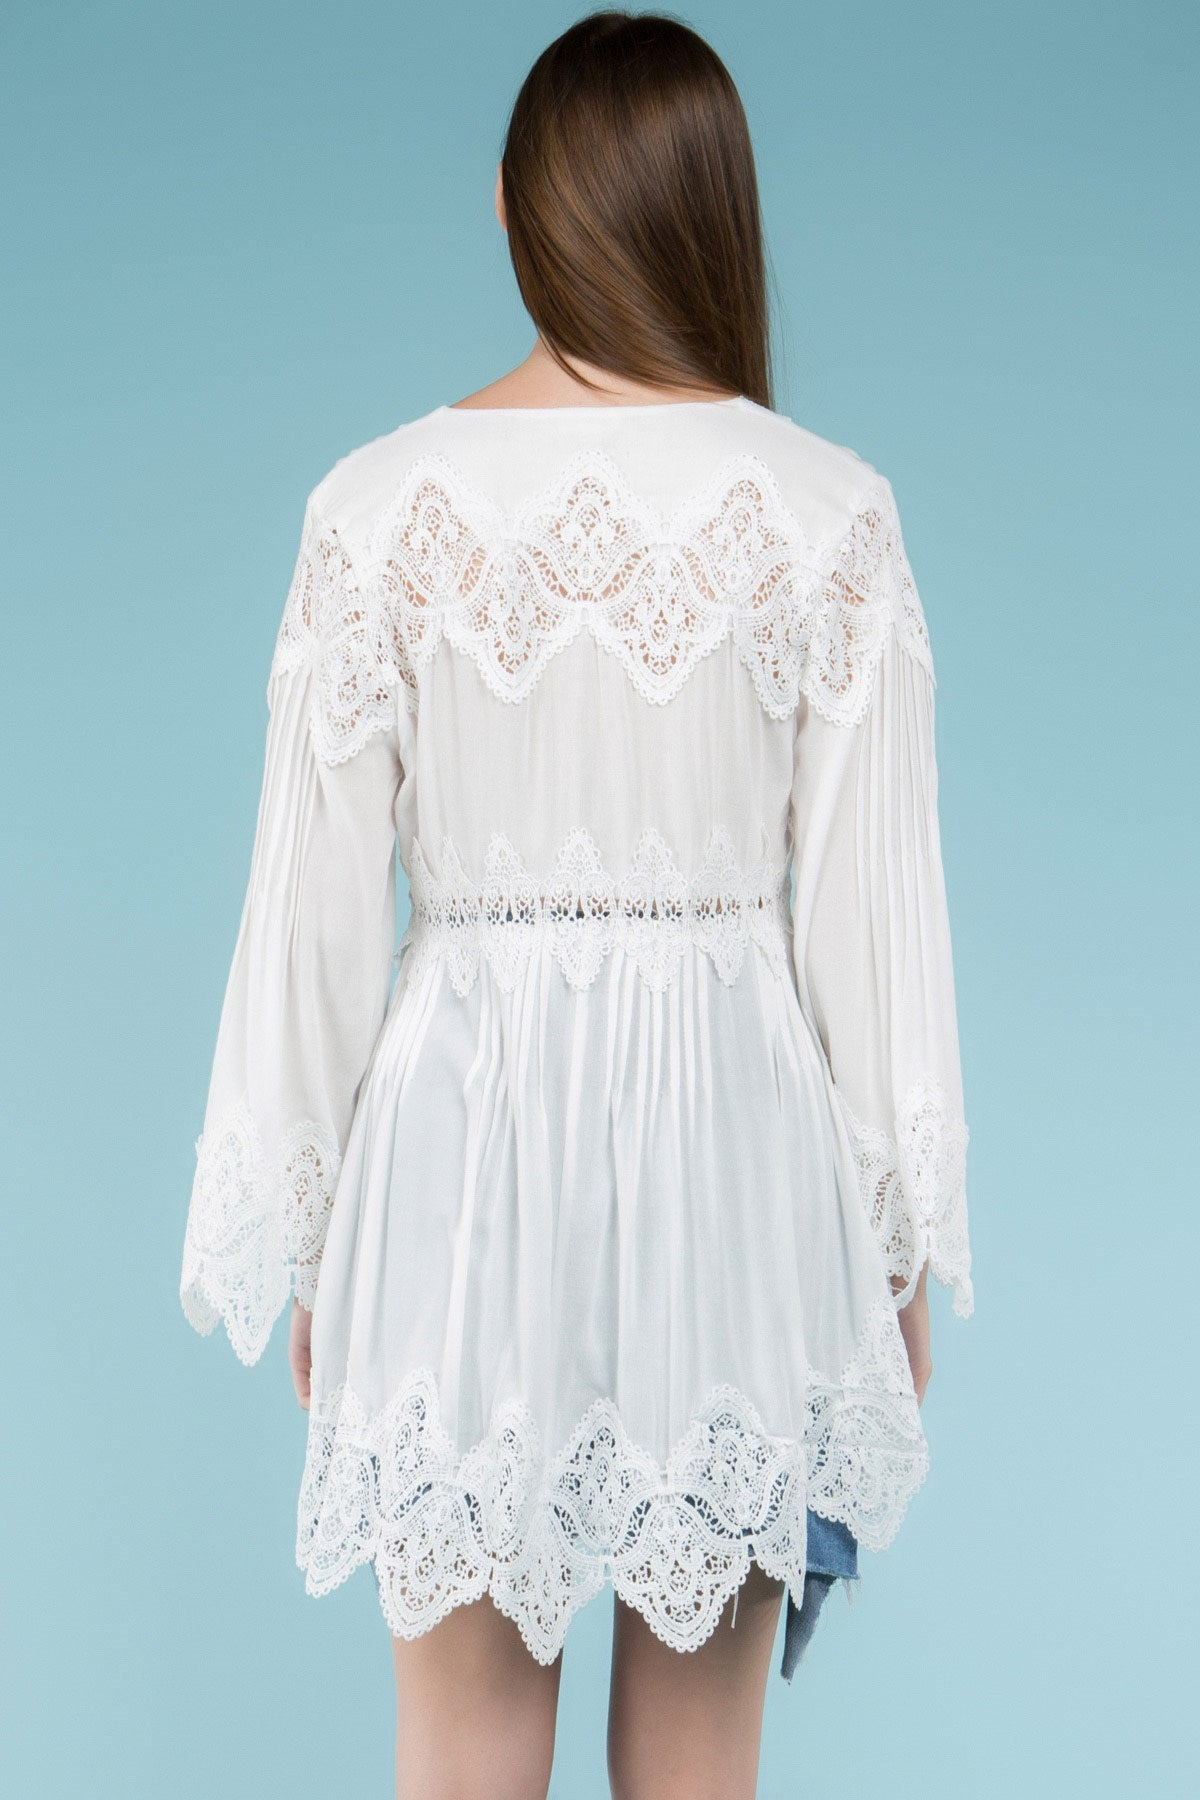 Back view young woman wearing white empire waist lace trim tunic top